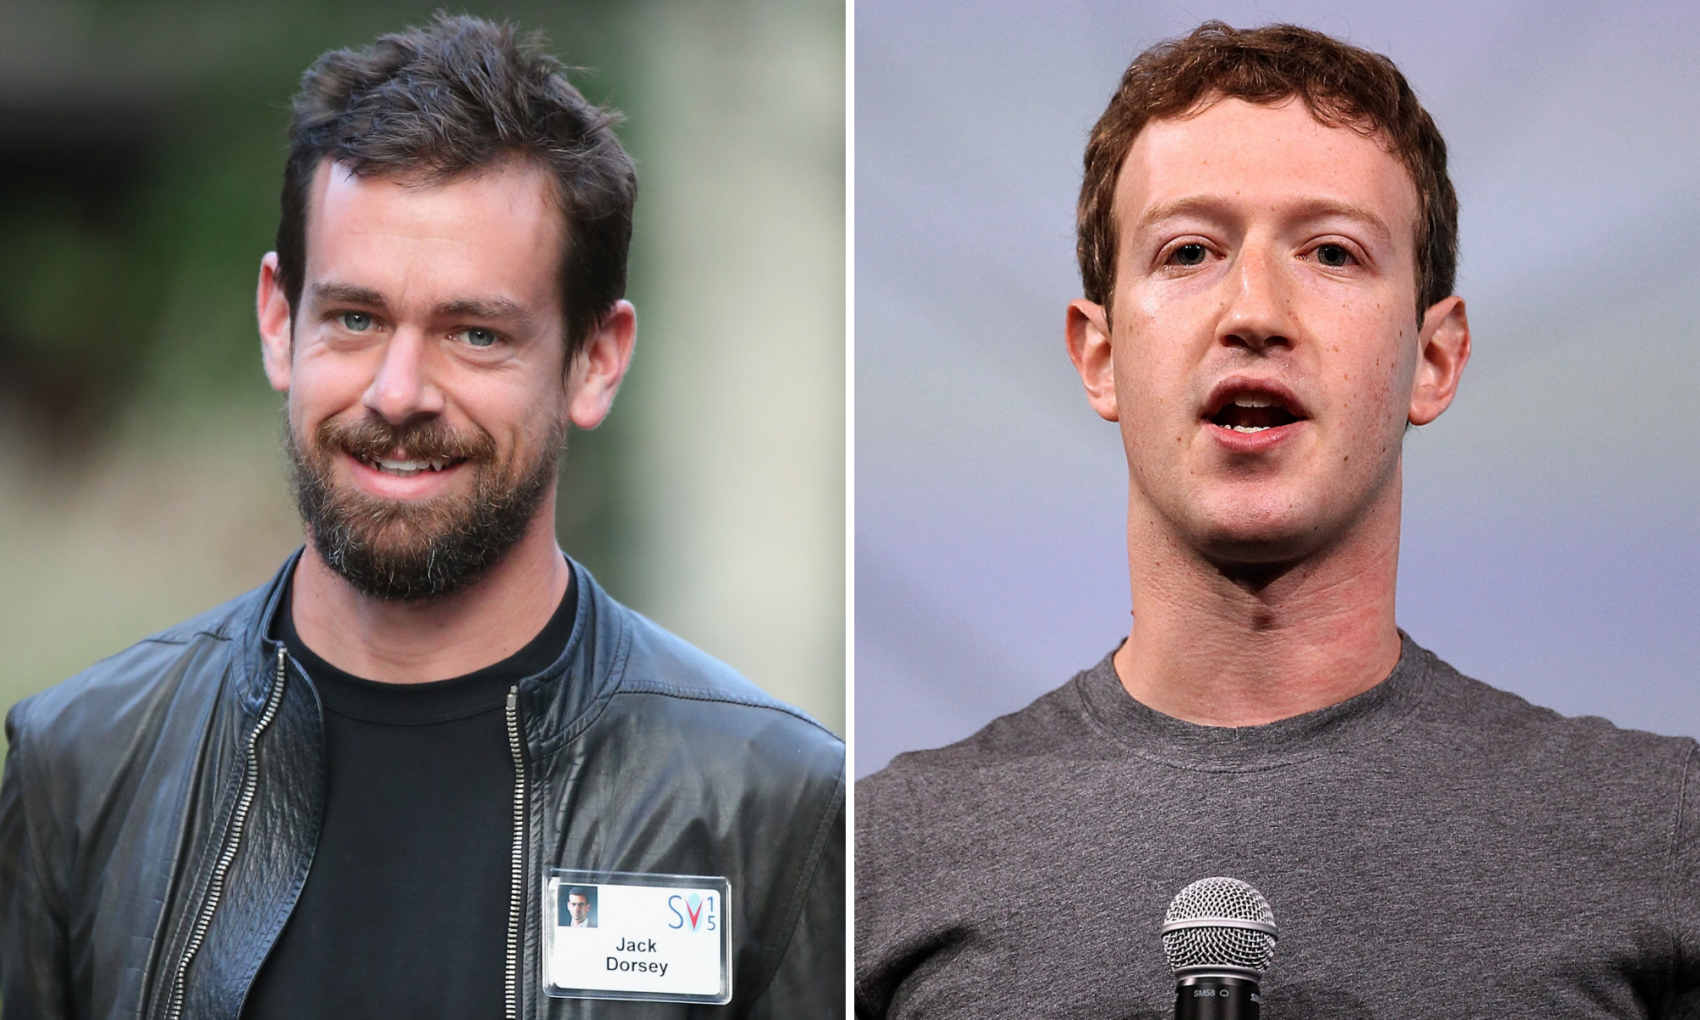 Twitter Ceo Jack Dorsey Says Mark Zuckerberg Killed A Goat With A Laser Gun And Served It To Him Cold